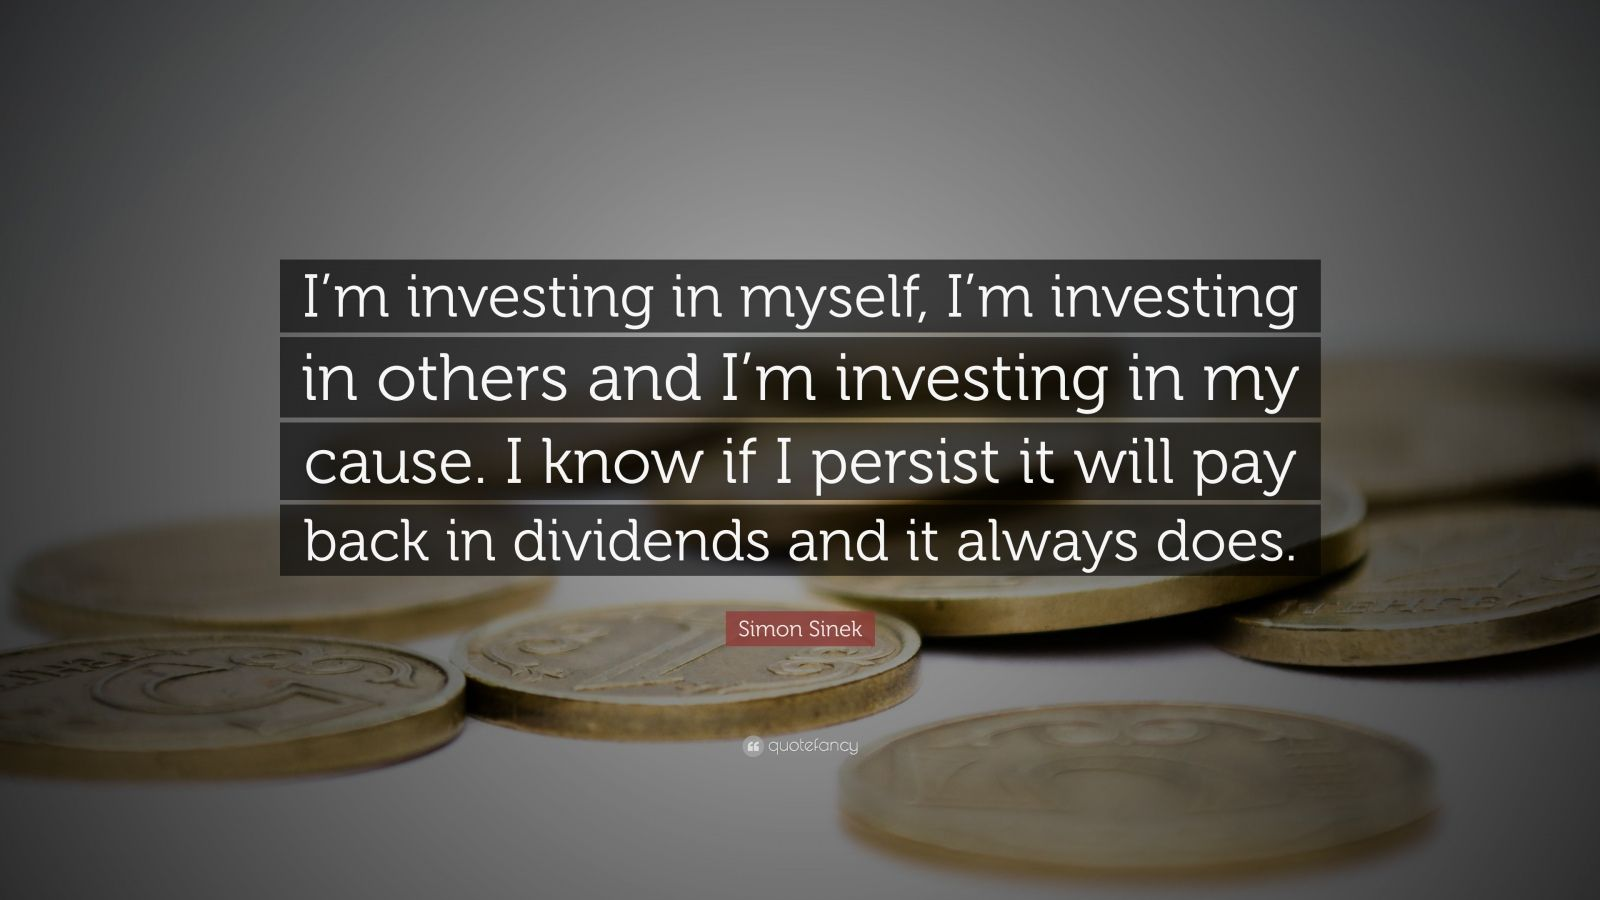 """Simon Sinek Quote: """"I'm investing in myself, I'm investing in others and I'm investing in my cause. I know if I persist it will pay back in dividends and it always does."""""""